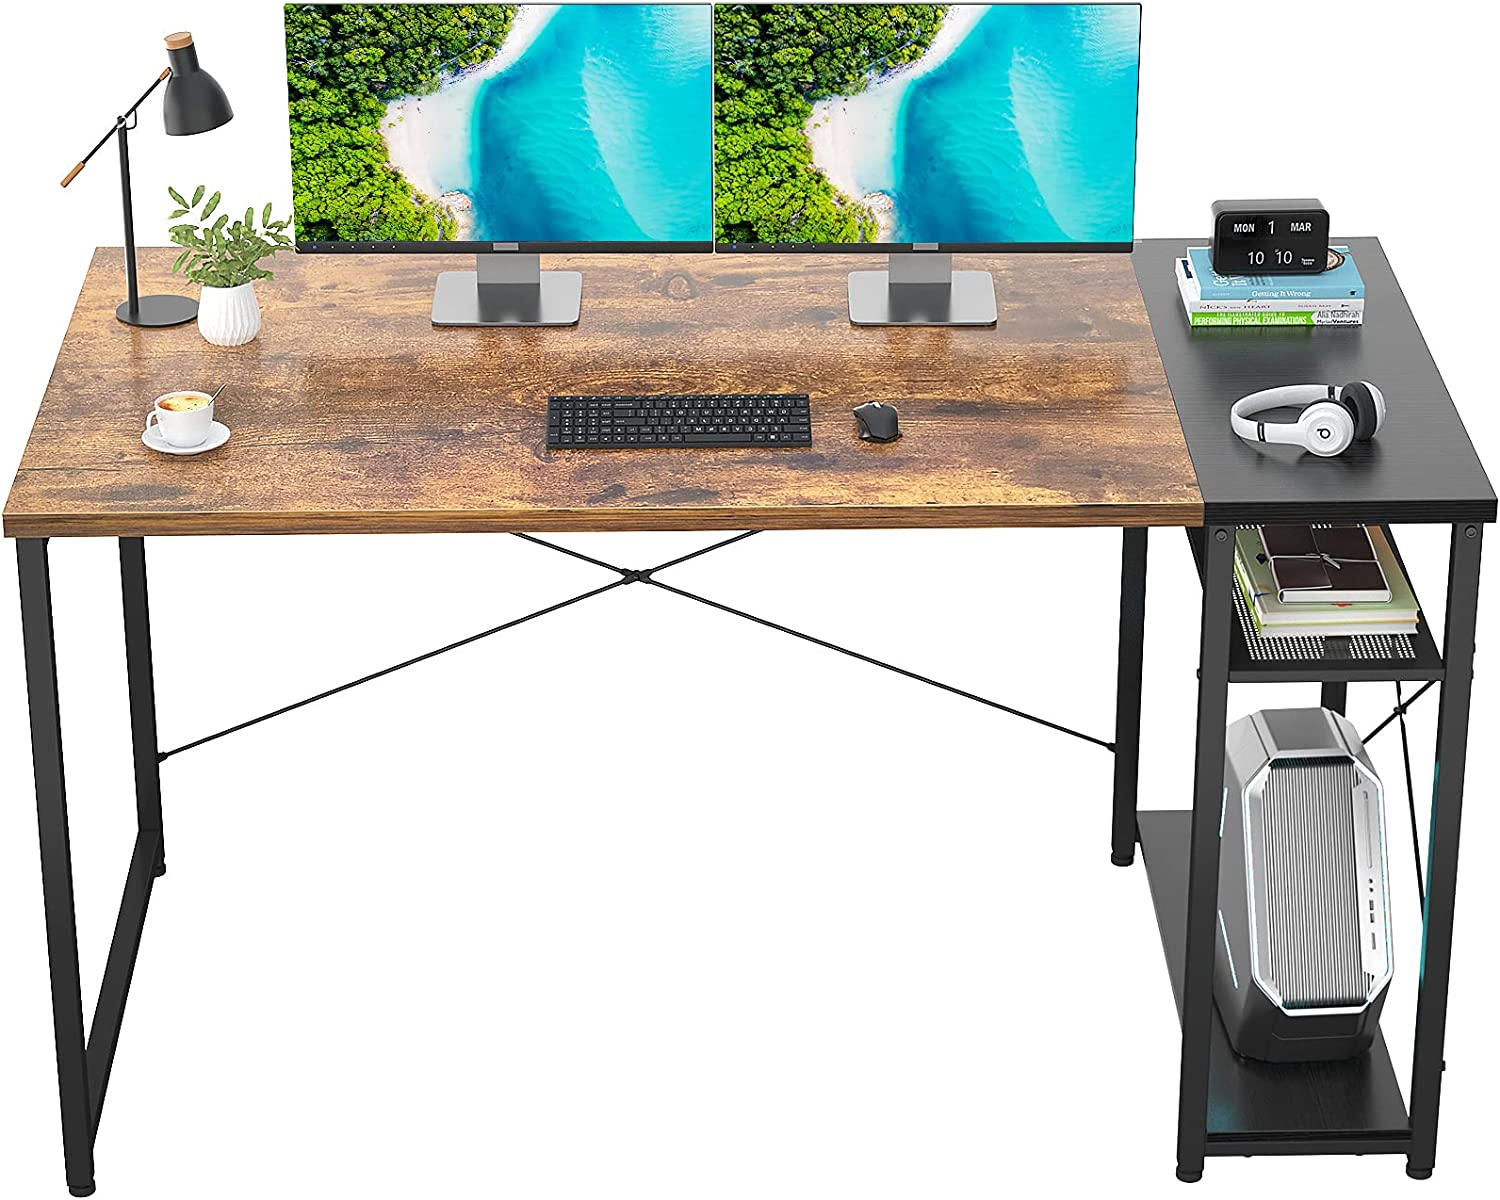 Ecoprsio 47 Inch Max 50% Oakland Mall OFF Computer Desk Storage Office She with Home